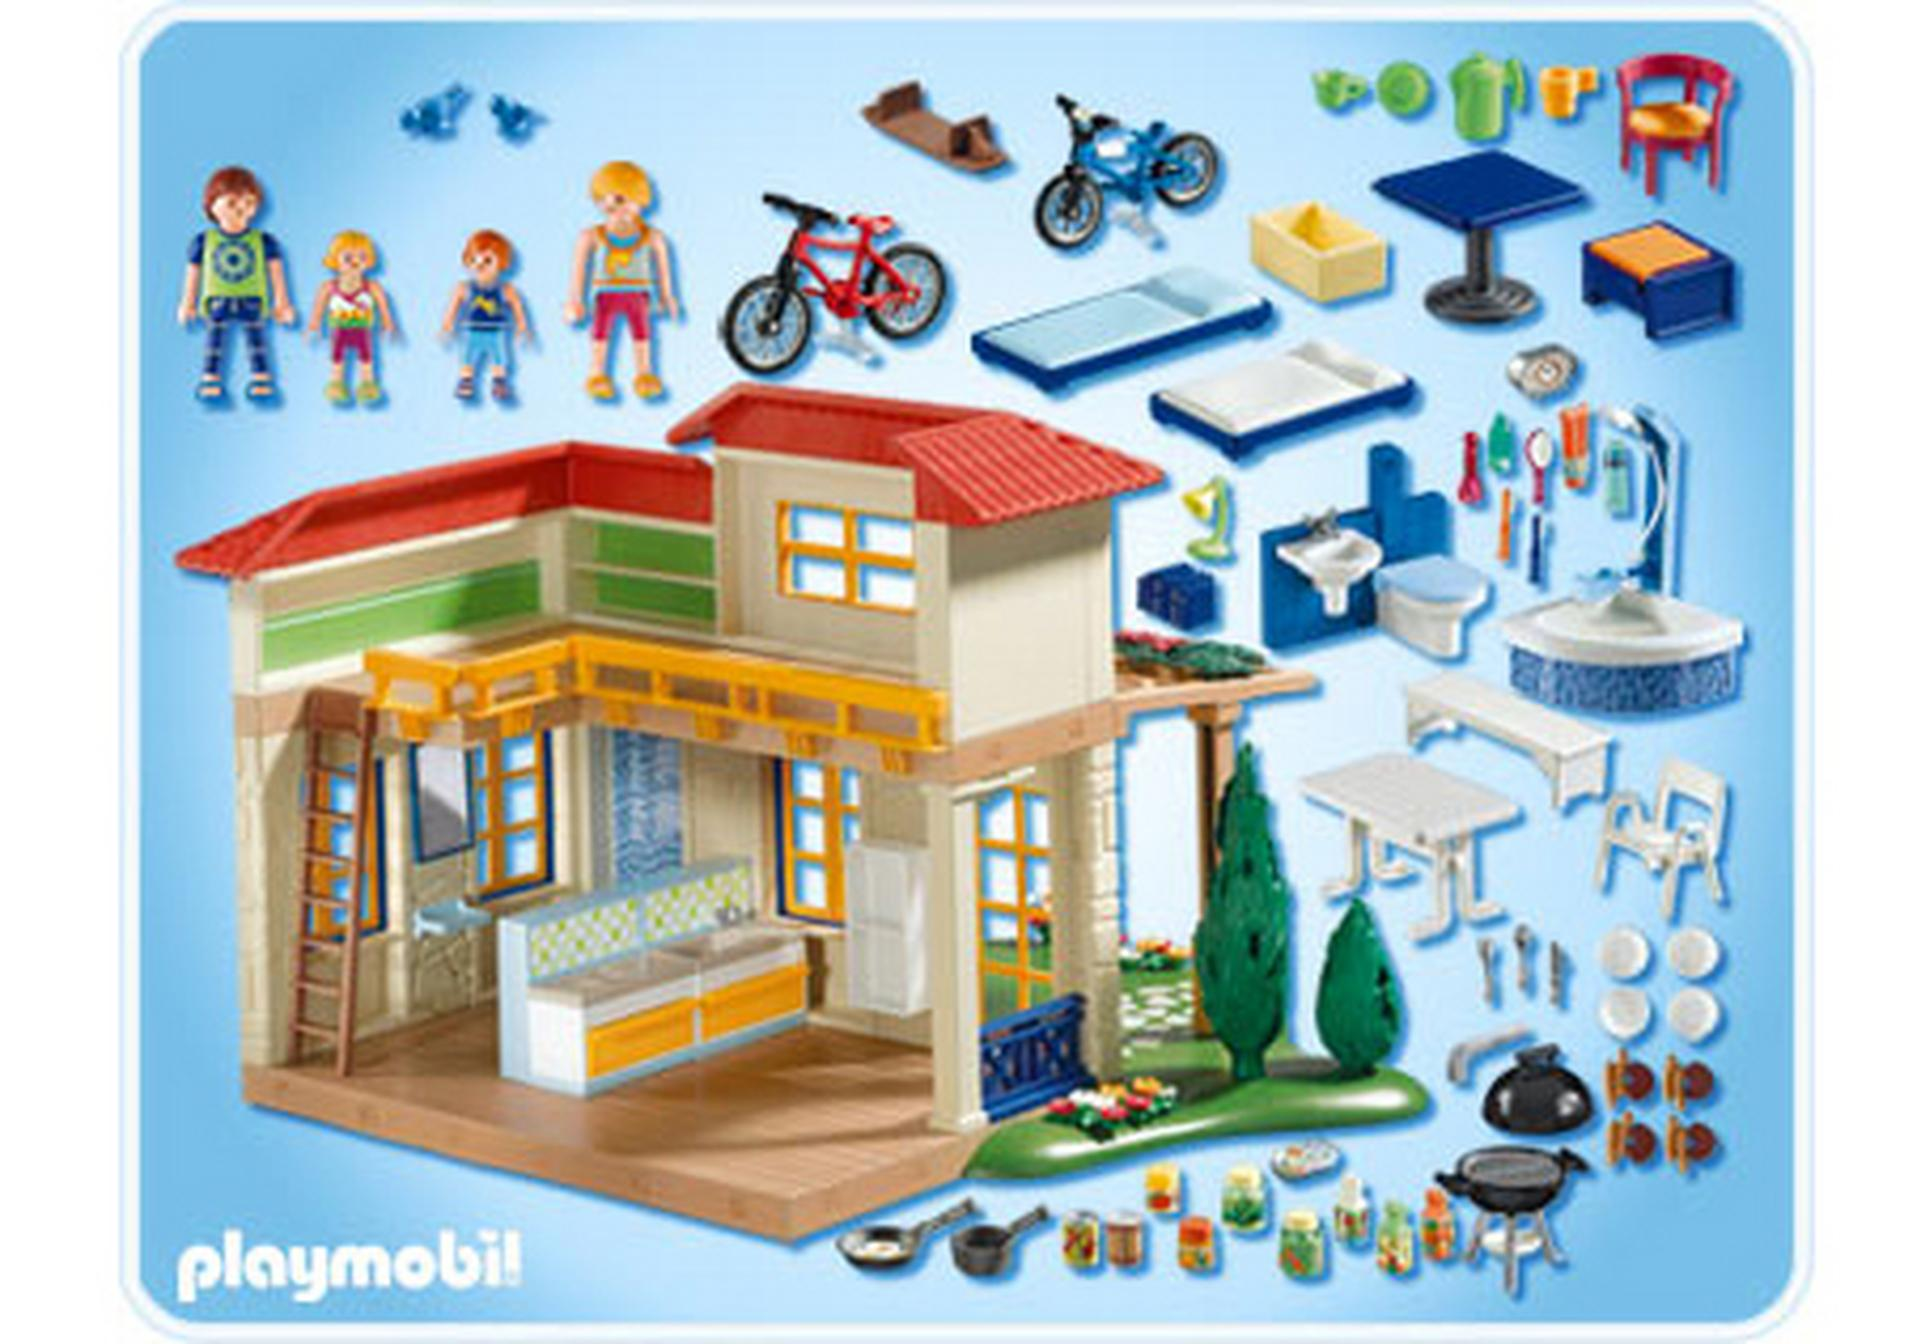 HD wallpapers plan playmobil 3965 maison moderne montage notice ...